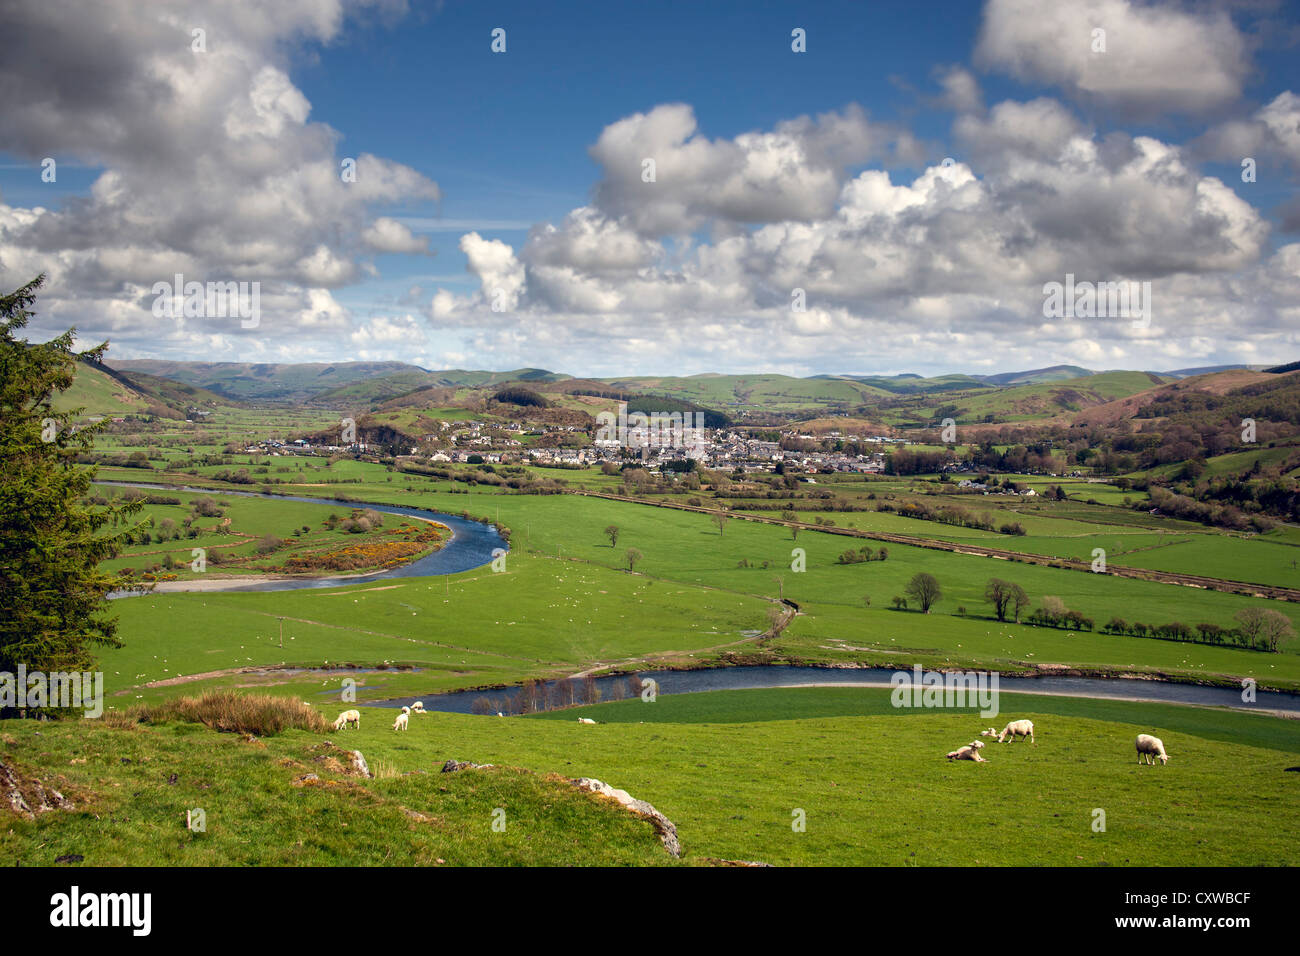 A view of machynlleth, powys, west of the town from the top of a 100 metre hill showing the river dovey and surrounding - Stock Image